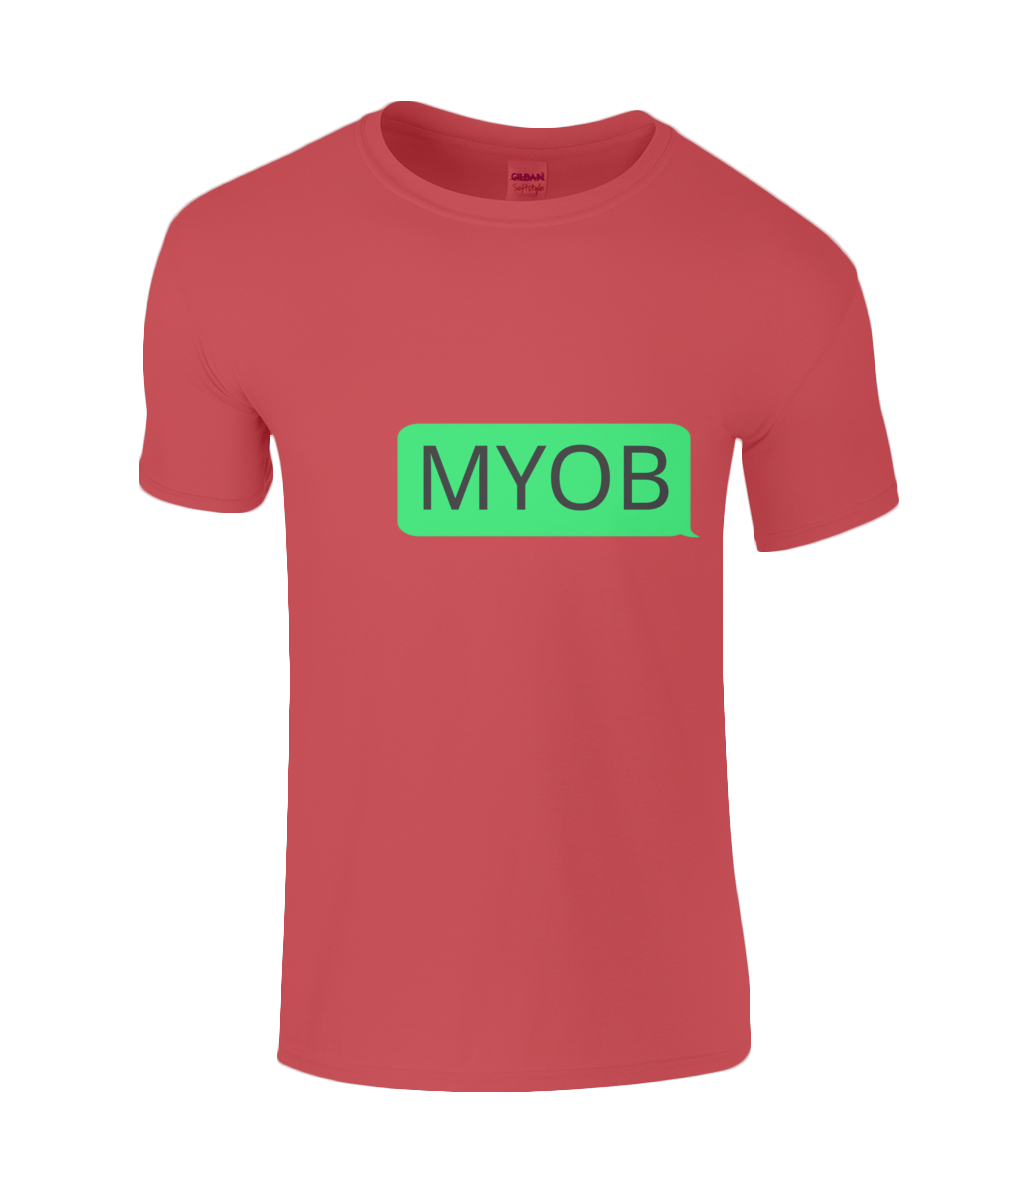 Myob - youth's t-shirt